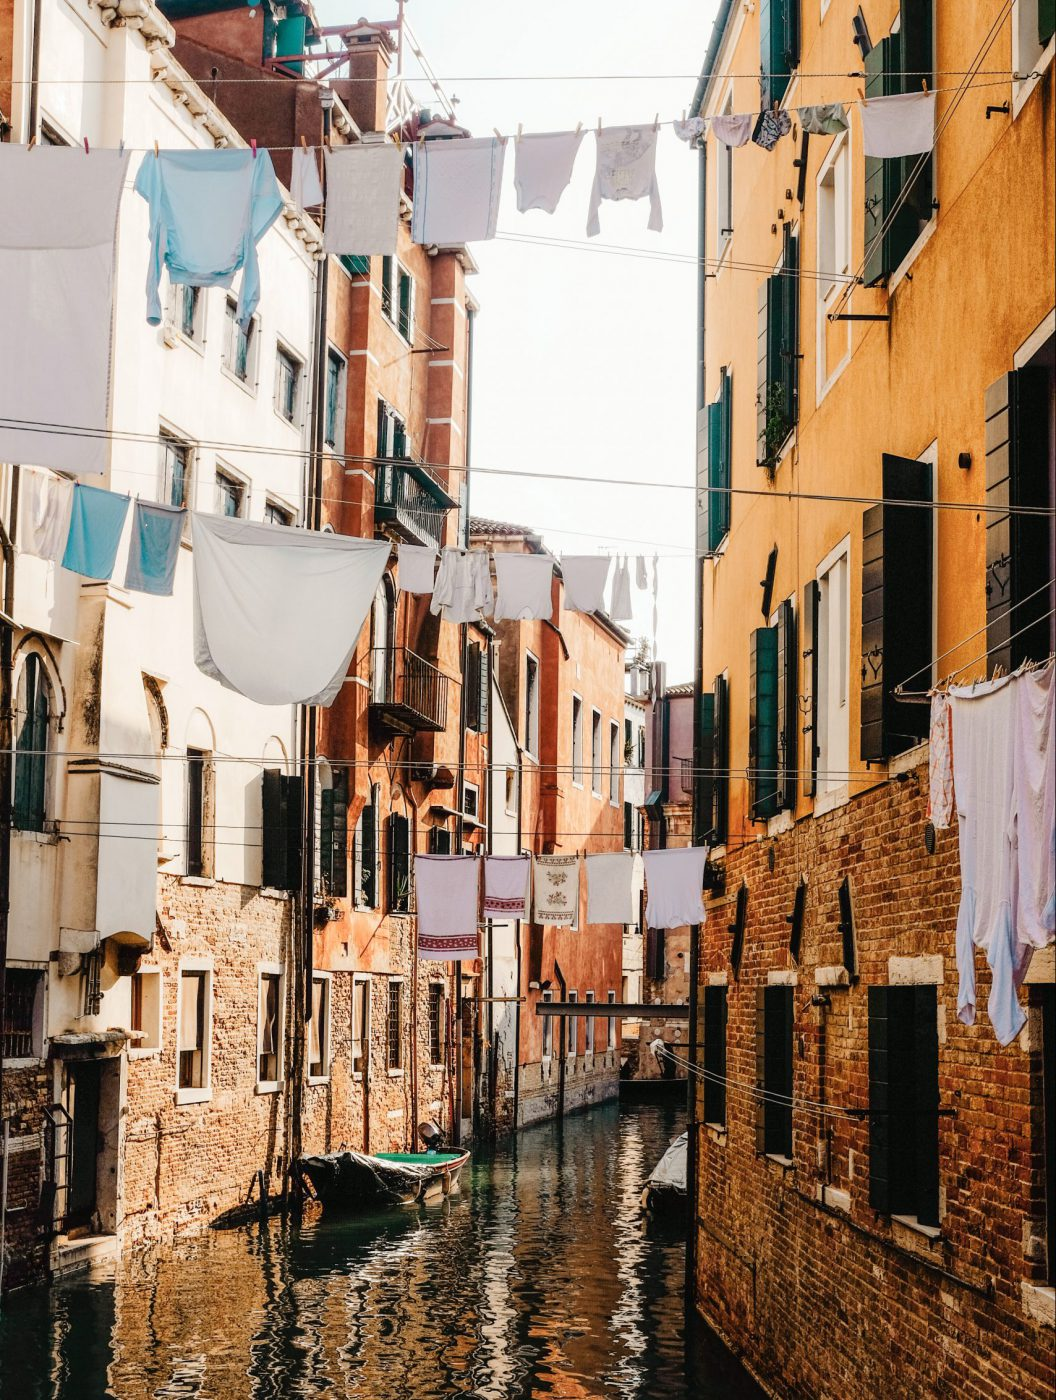 The beauty and symbolism of hanging laundry on the streets of Italy - Venice